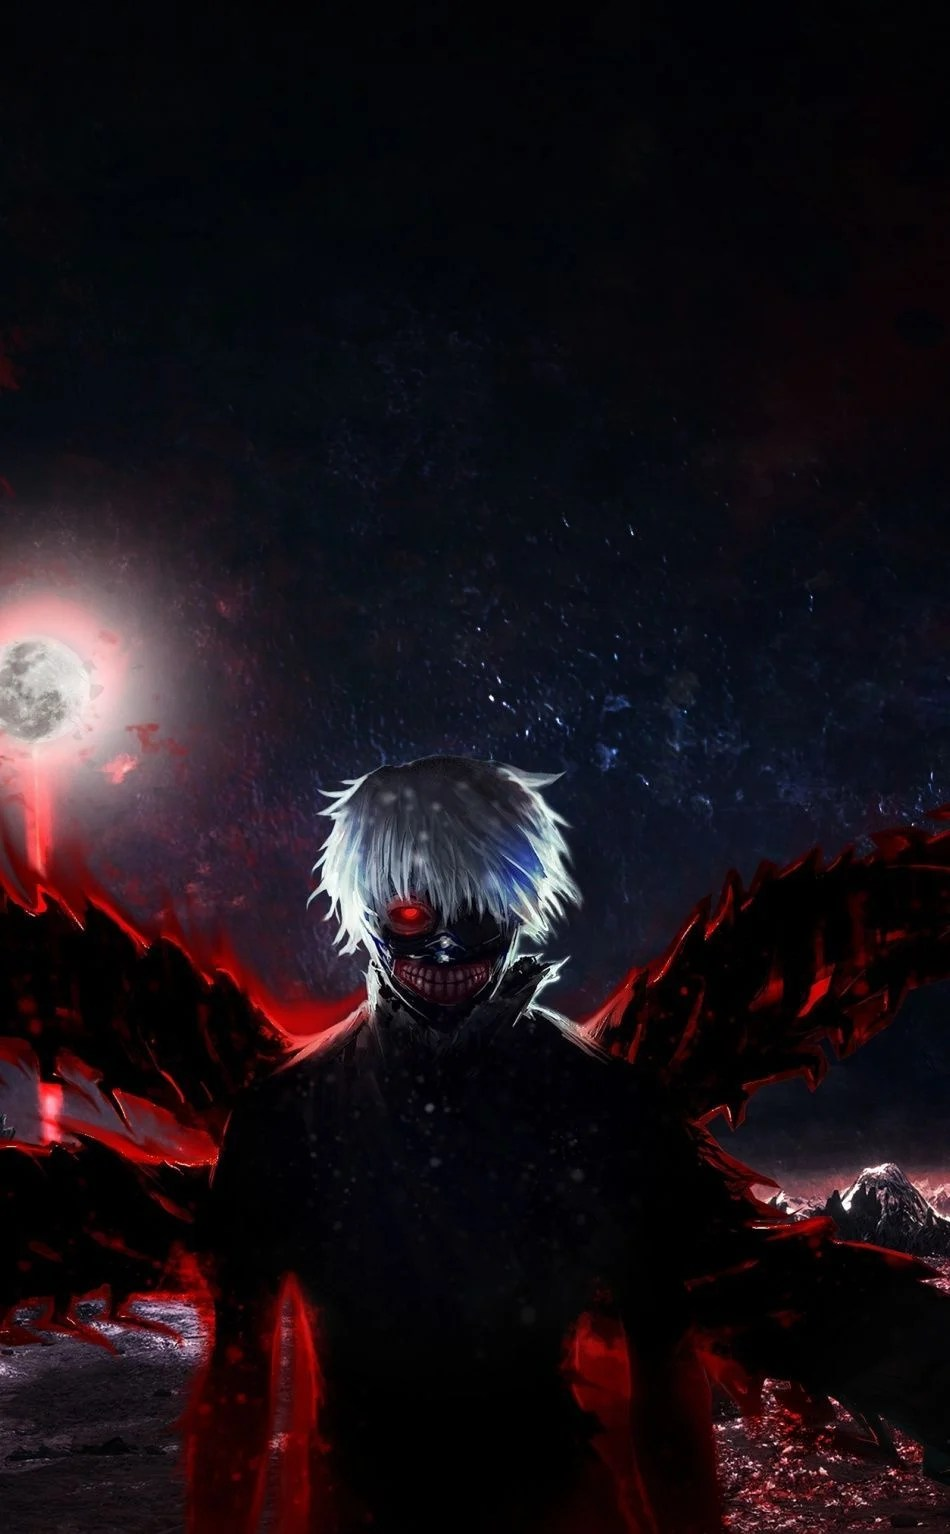 Scary Anime Pictures : scary, anime, pictures, Horror, Anime, Wallpapers, Backgrounds, WallpaperAccess